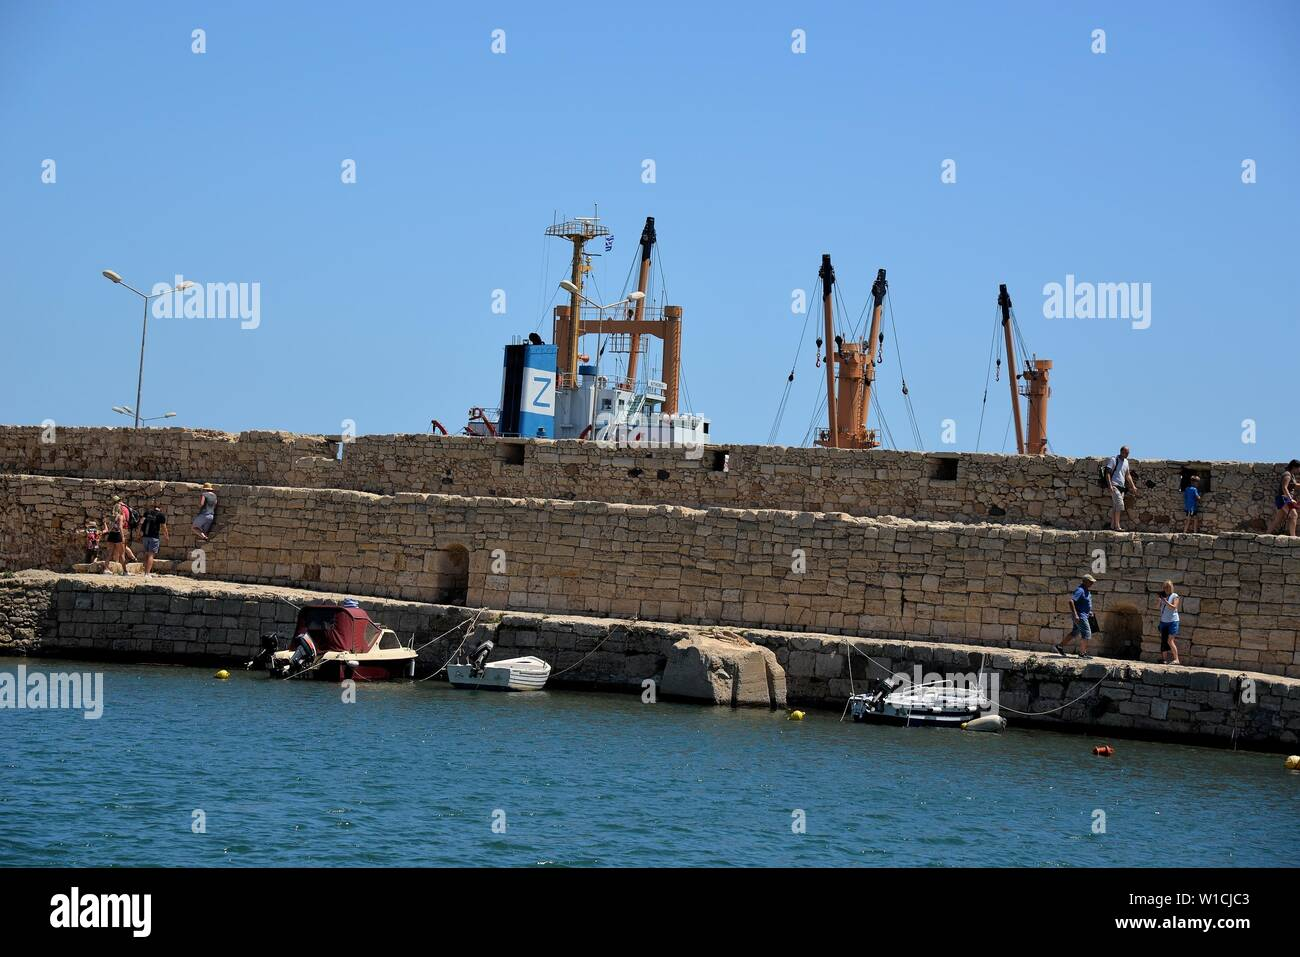 Part of the pier in the old port of Rethimnon, Crete, Greece. Stock Photo